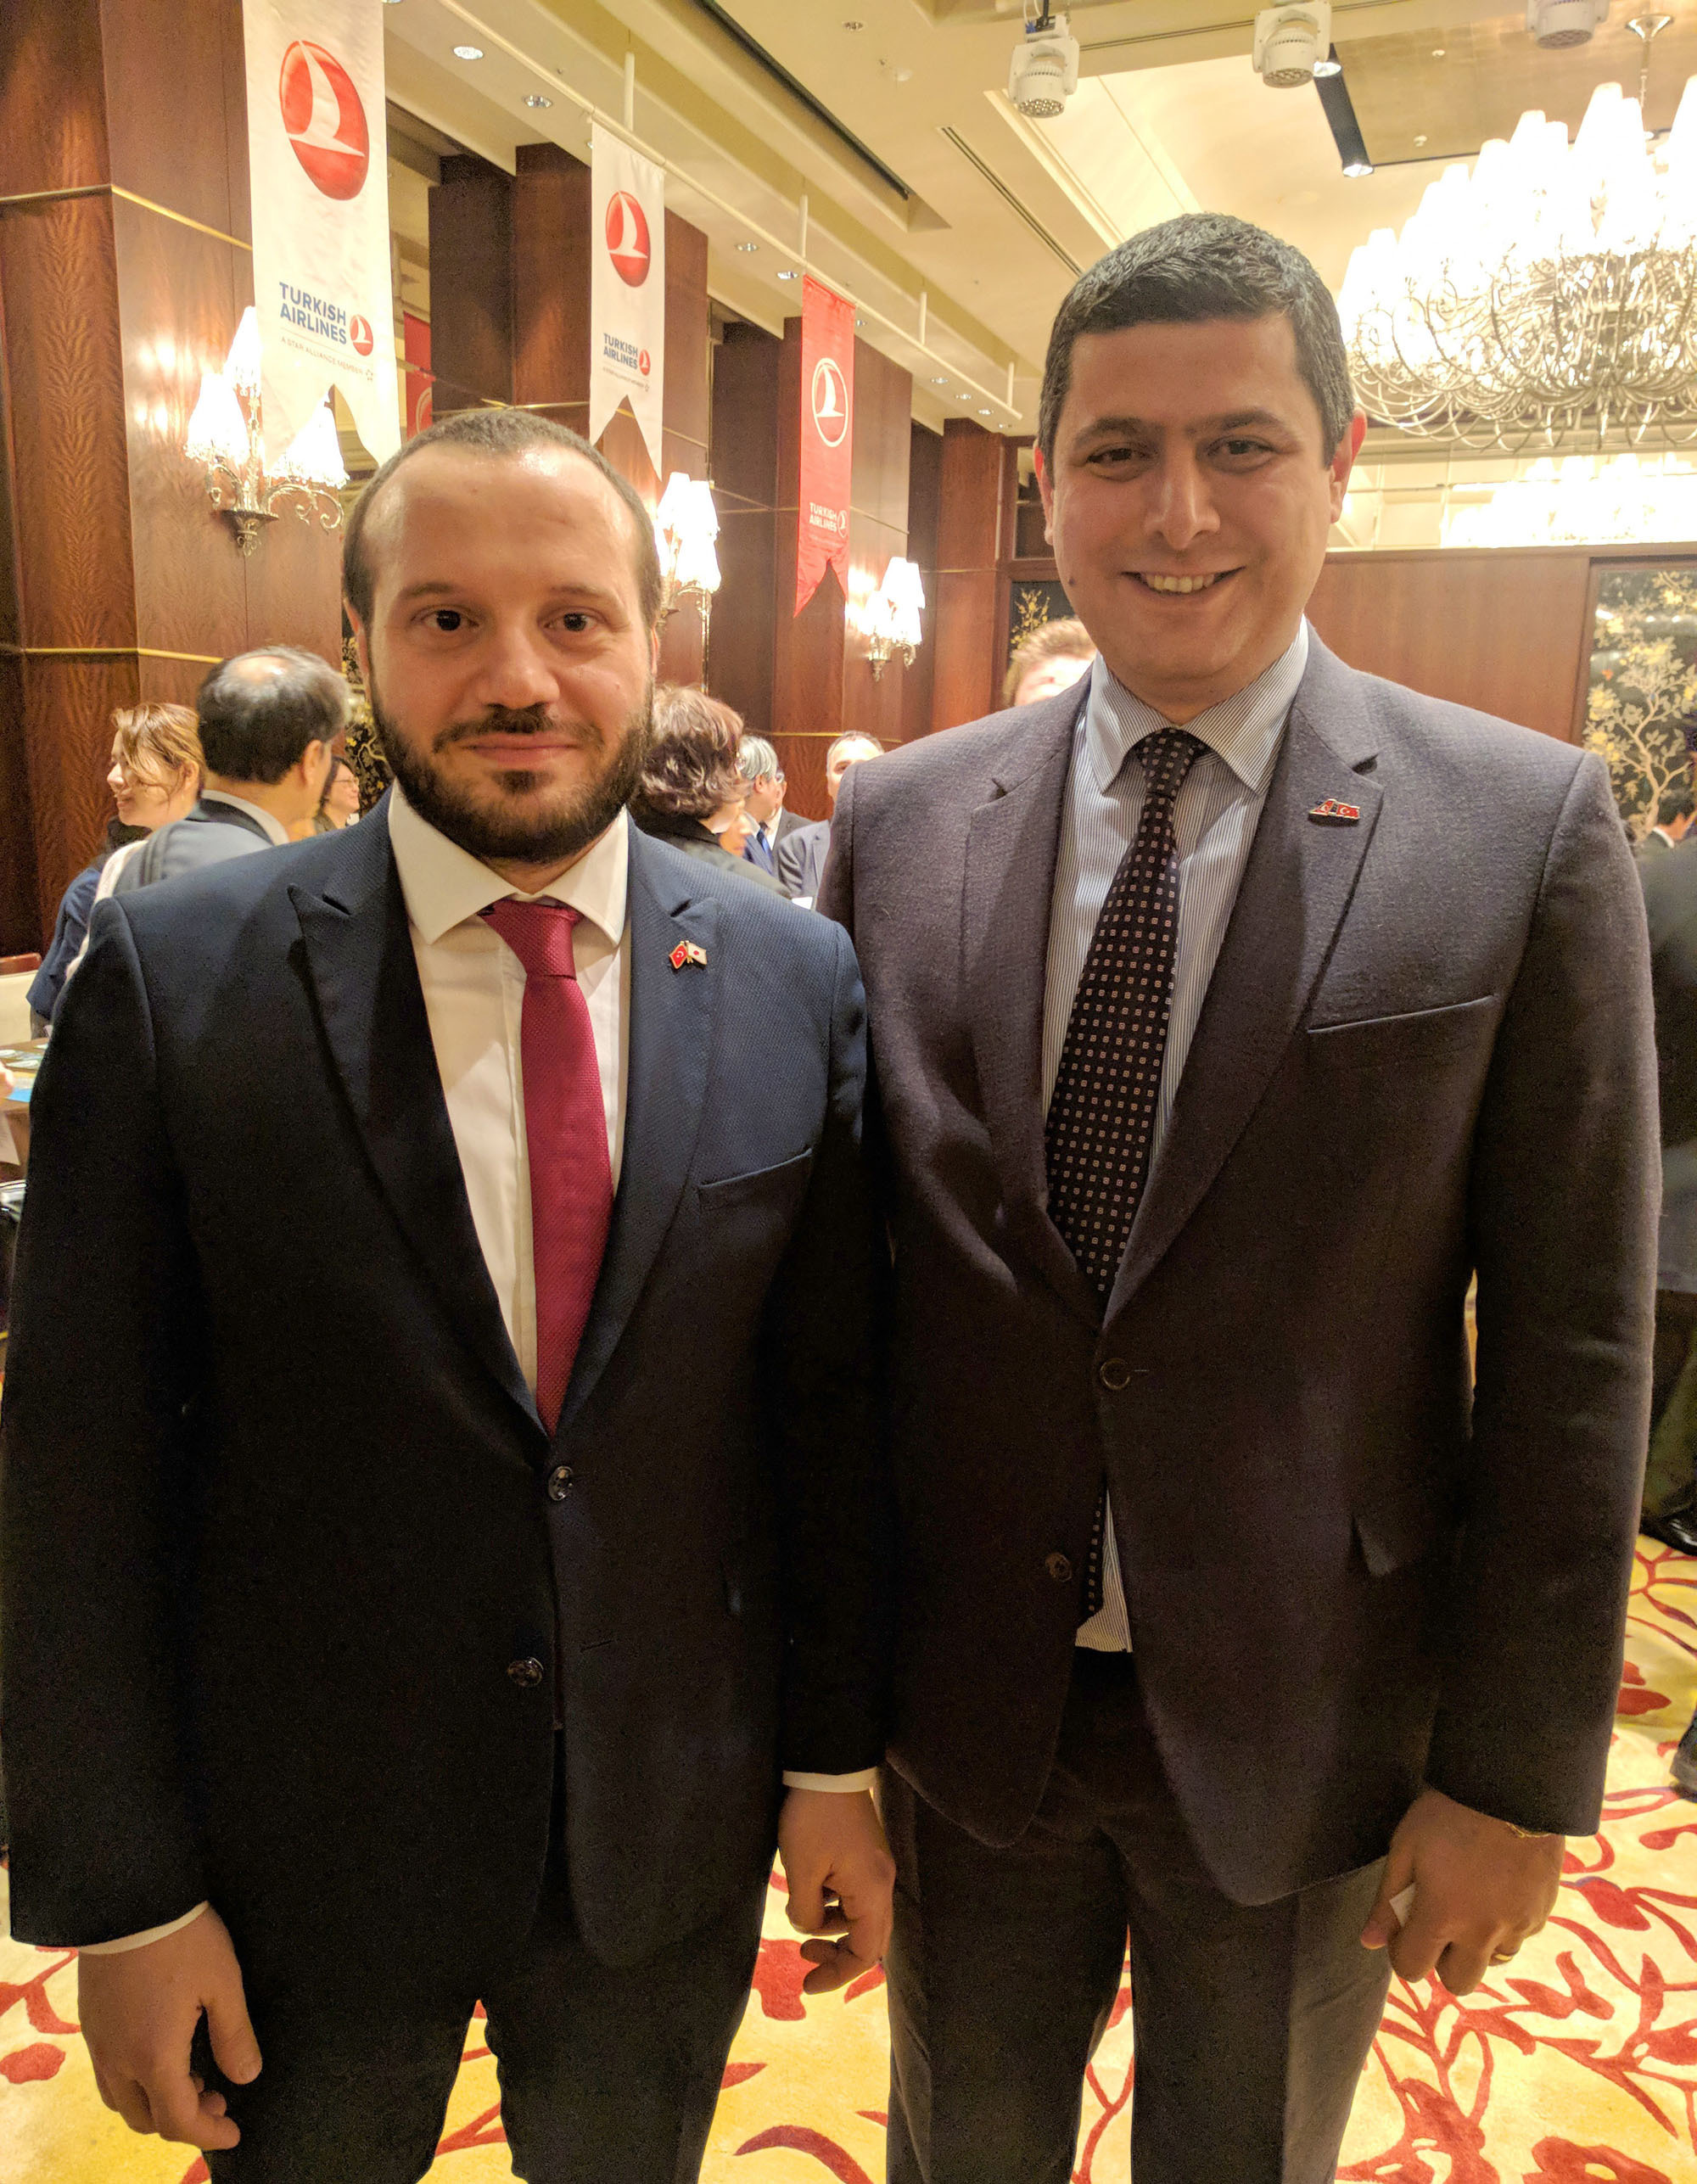 Turkish Airlines Inc. Vice President Tuncay Eminoglu (left) poses with Tokyo Mehmet Akay General Manager (right) at the workshop on Balkan, hosted by Turkish Airlines Inc. at Shangri-La Hotel Tokyo on March 19. |  SHIMPEI KISHIMOTO